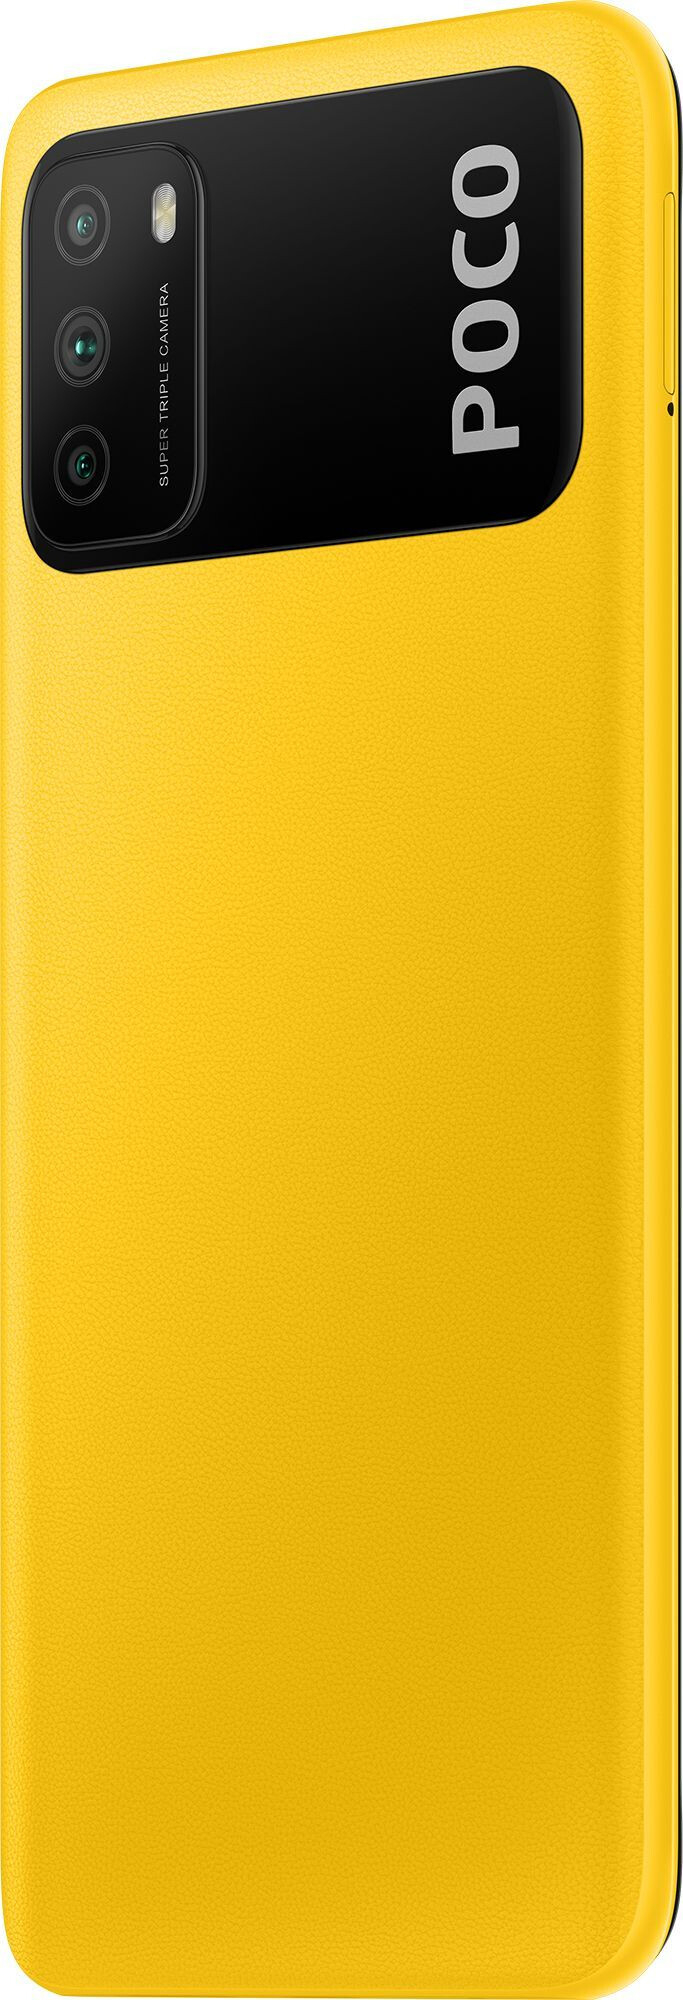 Смартфон Xiaomi Poco M3 4/64Gb Yellow: Фото 7